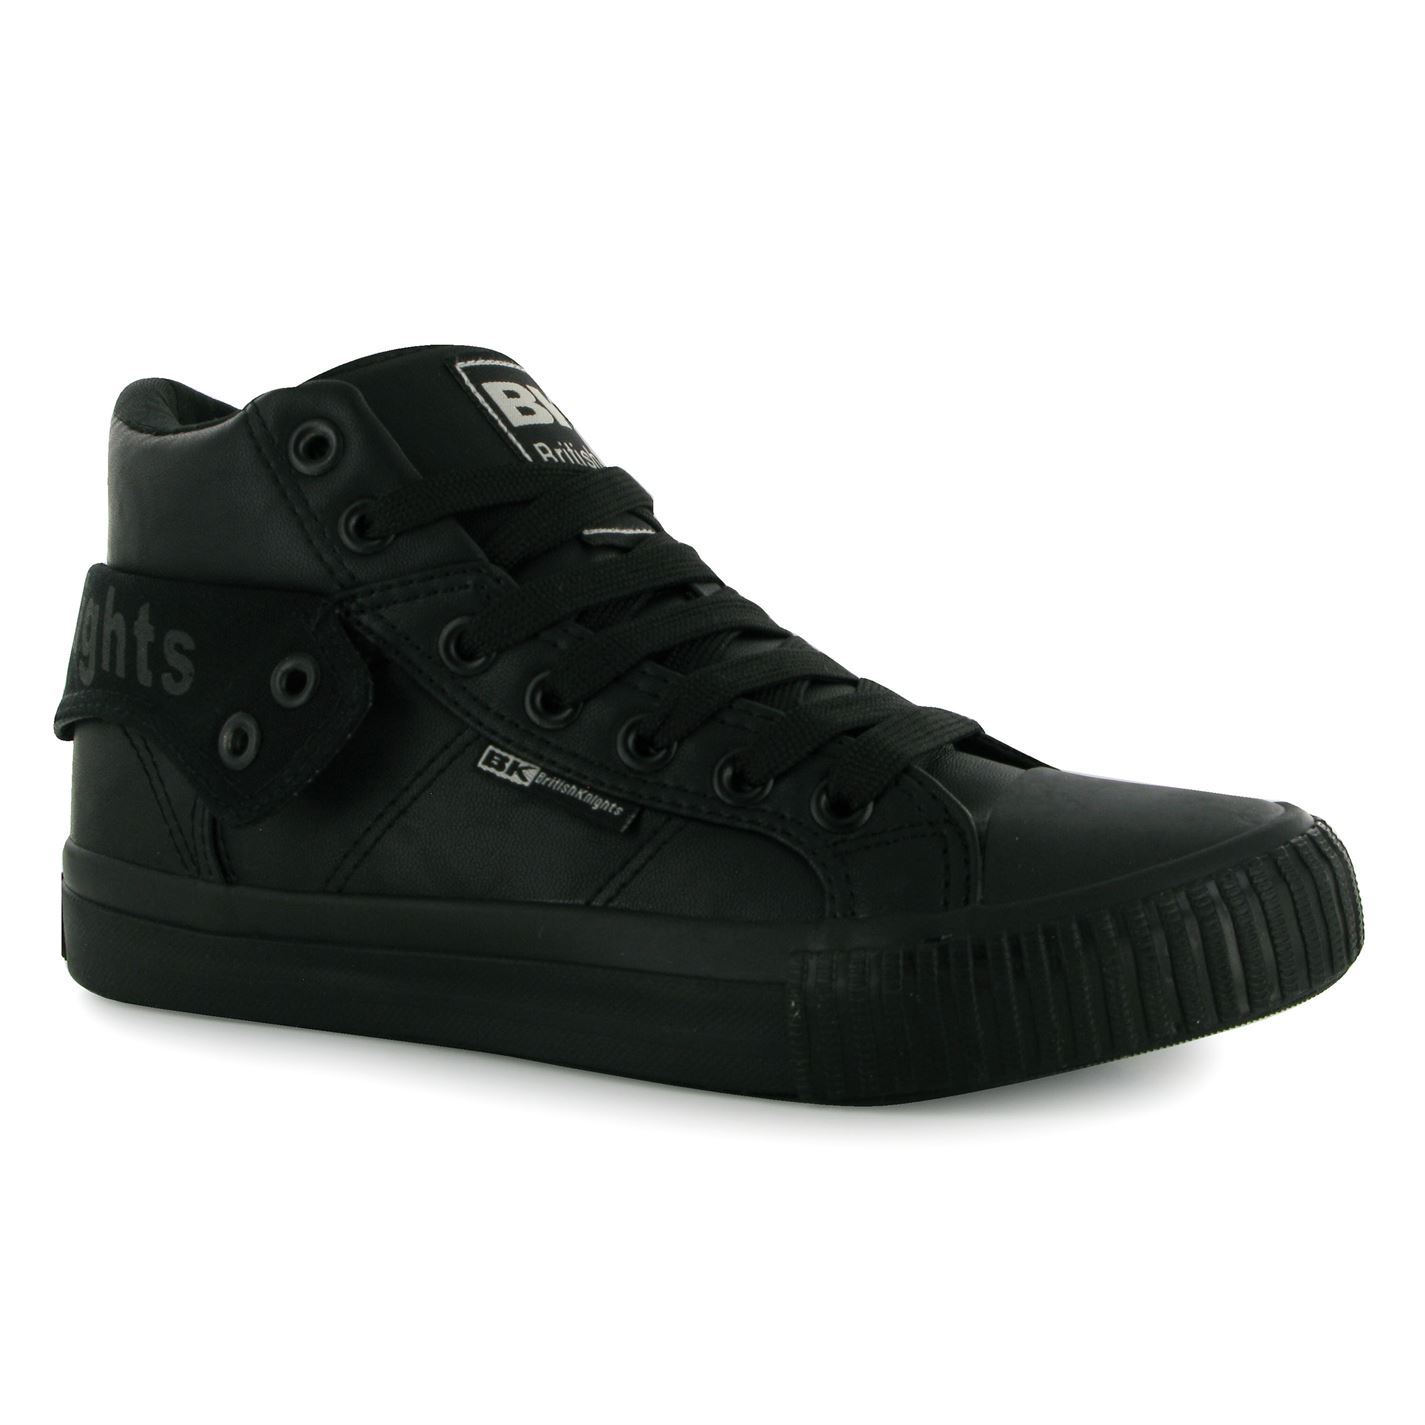 British-Knights-Roco-Fold-Over-Girls-Trainers-Shoes-Footwear thumbnail 3